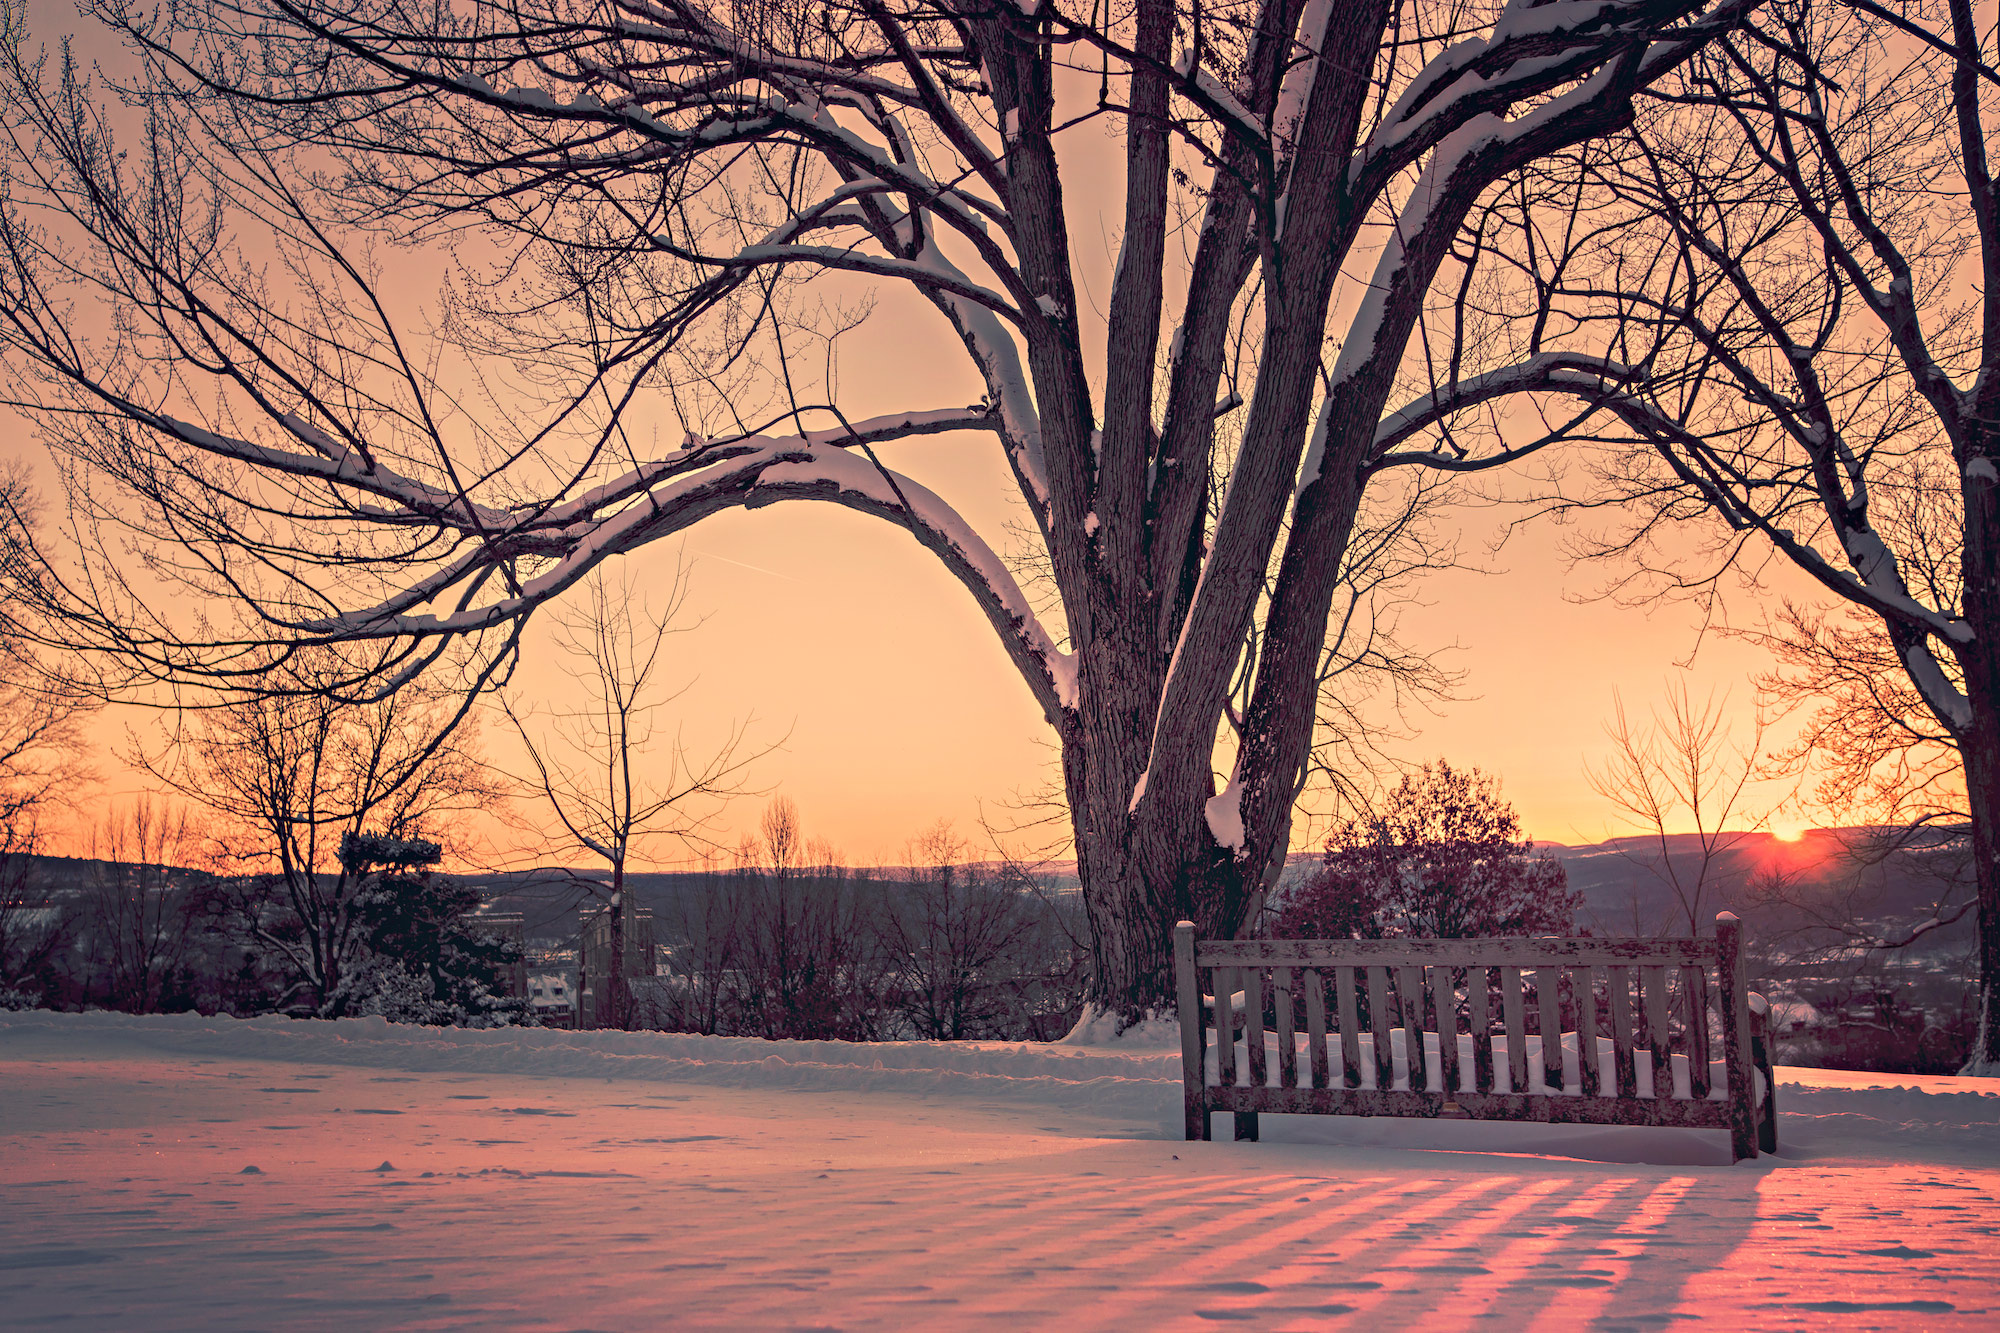 a tree in winter with no leaves next to a bench at sunset